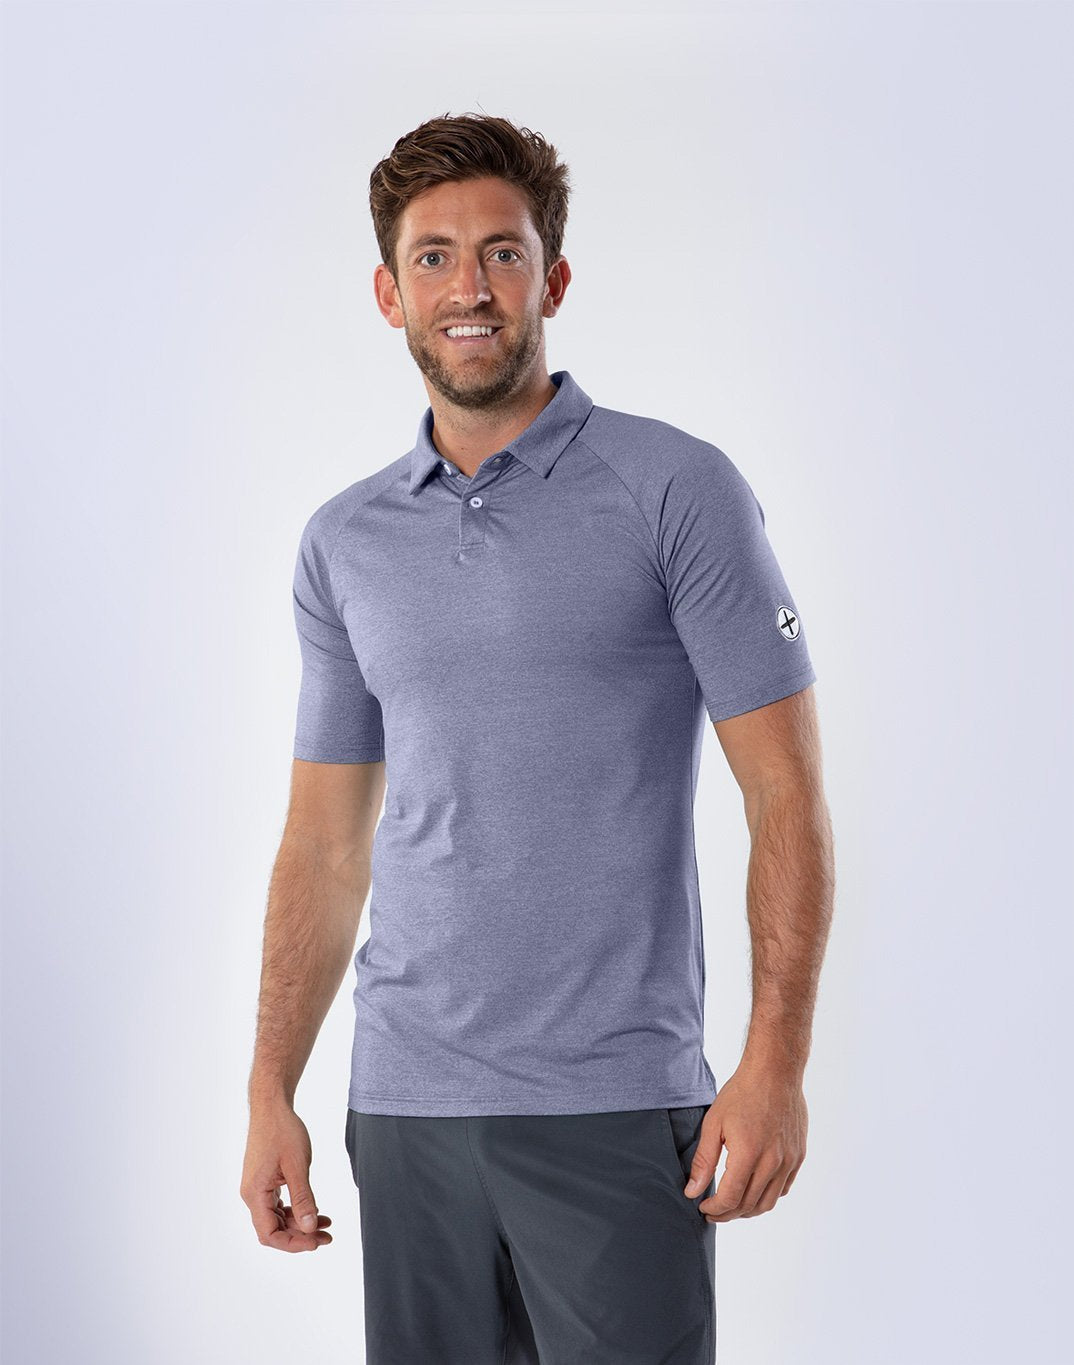 Gym Plus Coffee T-Shirt Men's Titanium Marco Polo Designed in Ireland